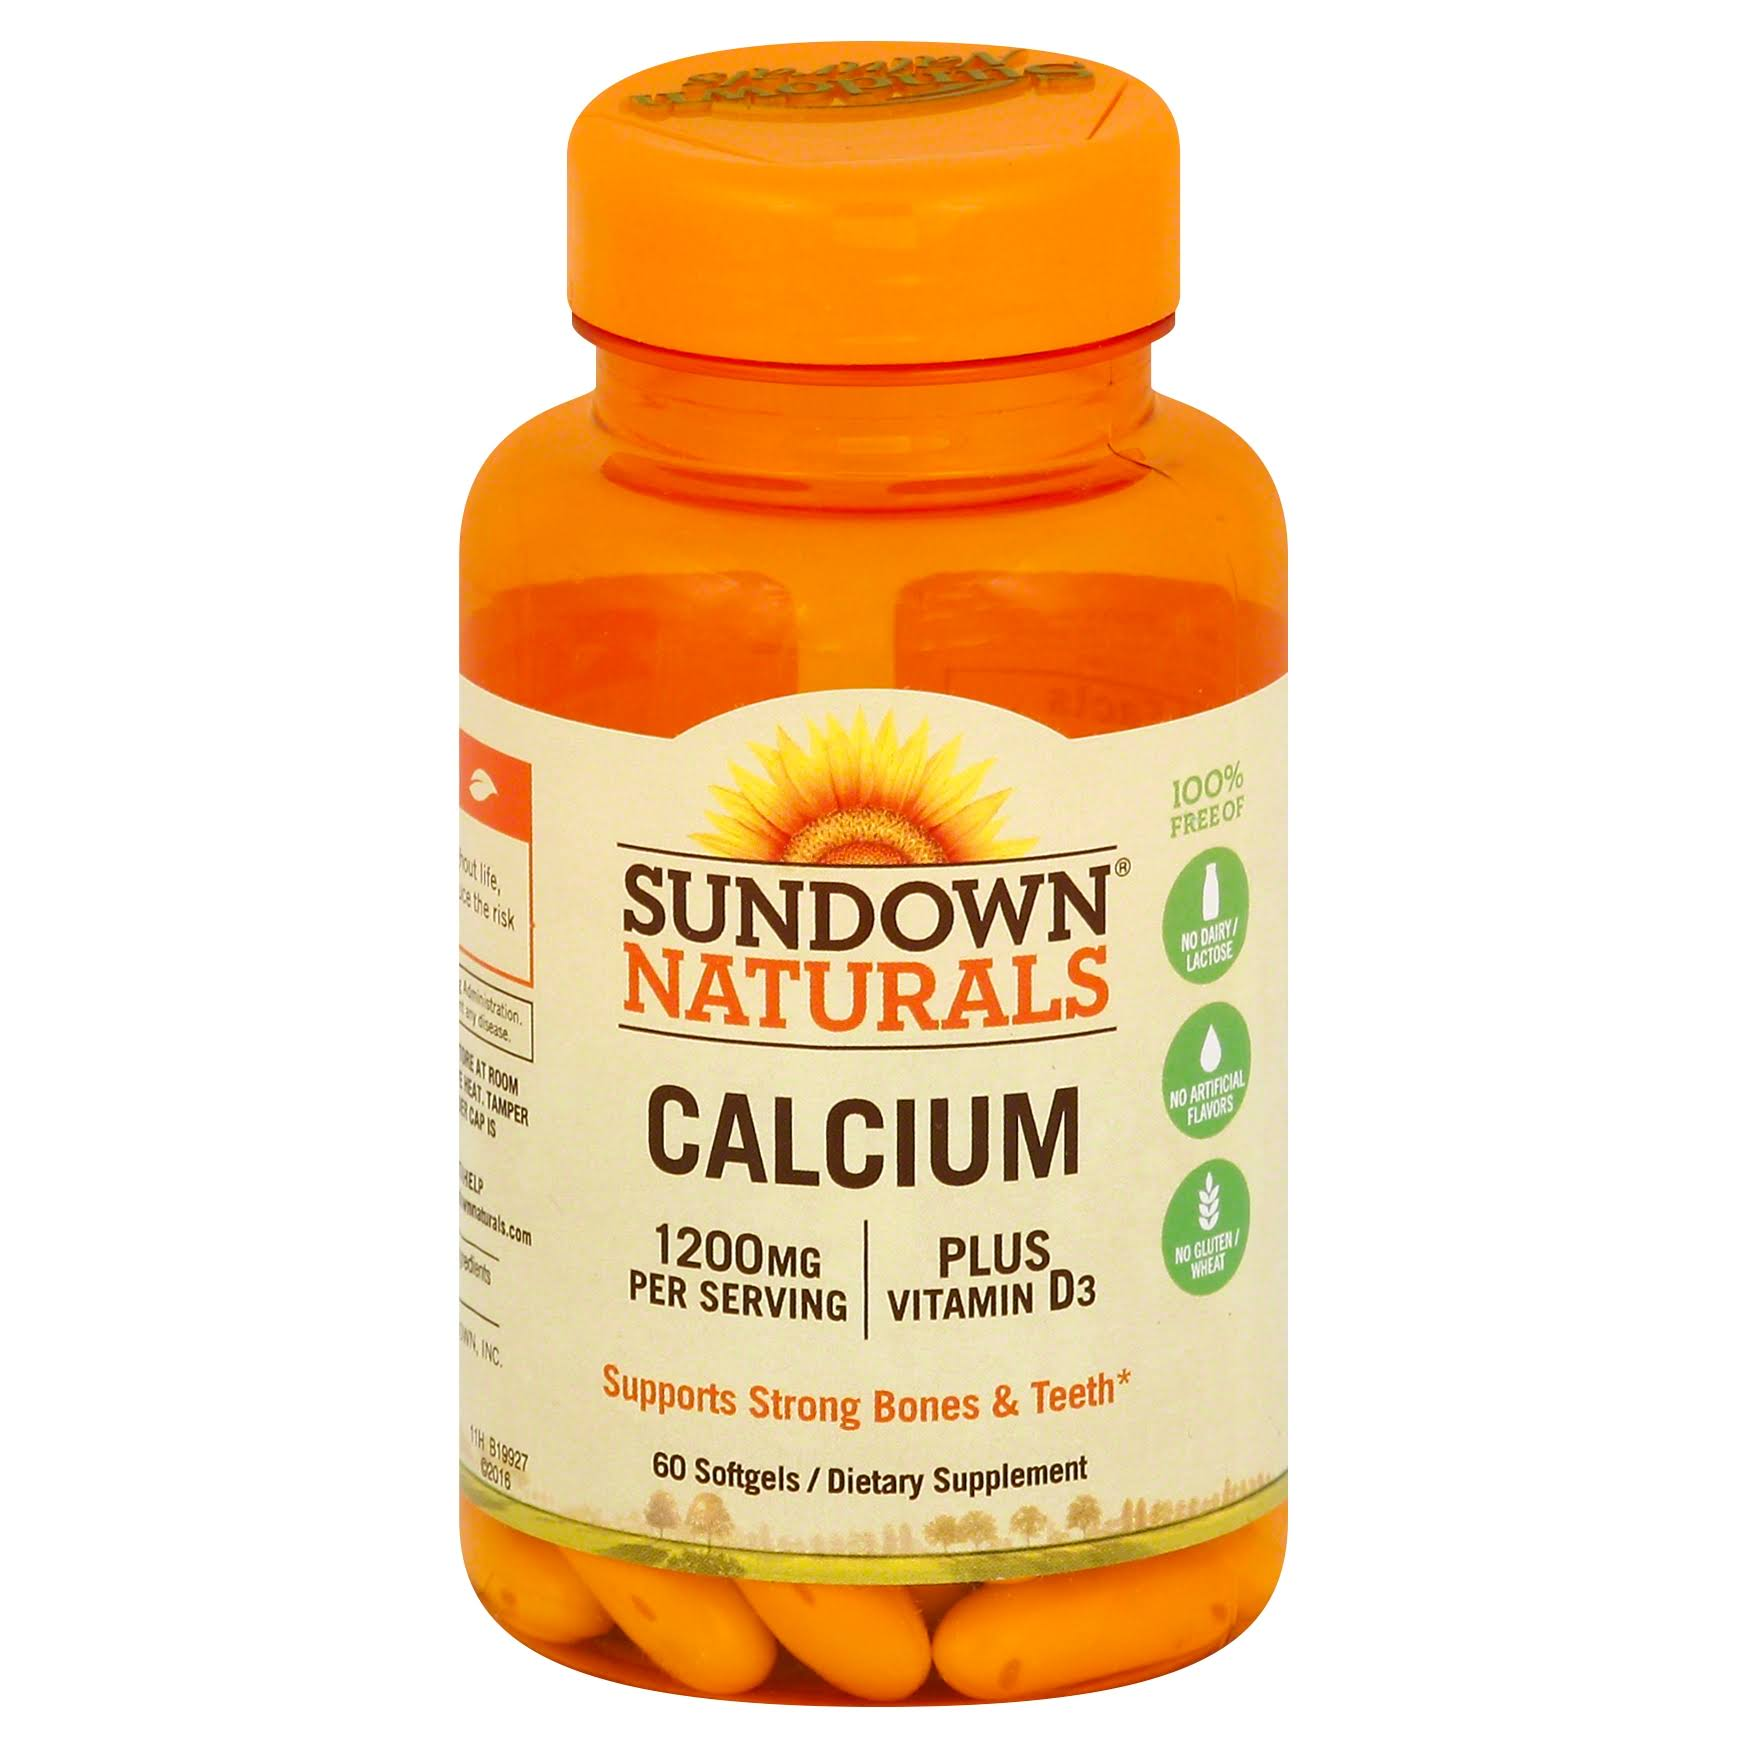 Sundown Naturals Calcium Plus Vitamin D3 Supplement - 1200 mg, 60 Count